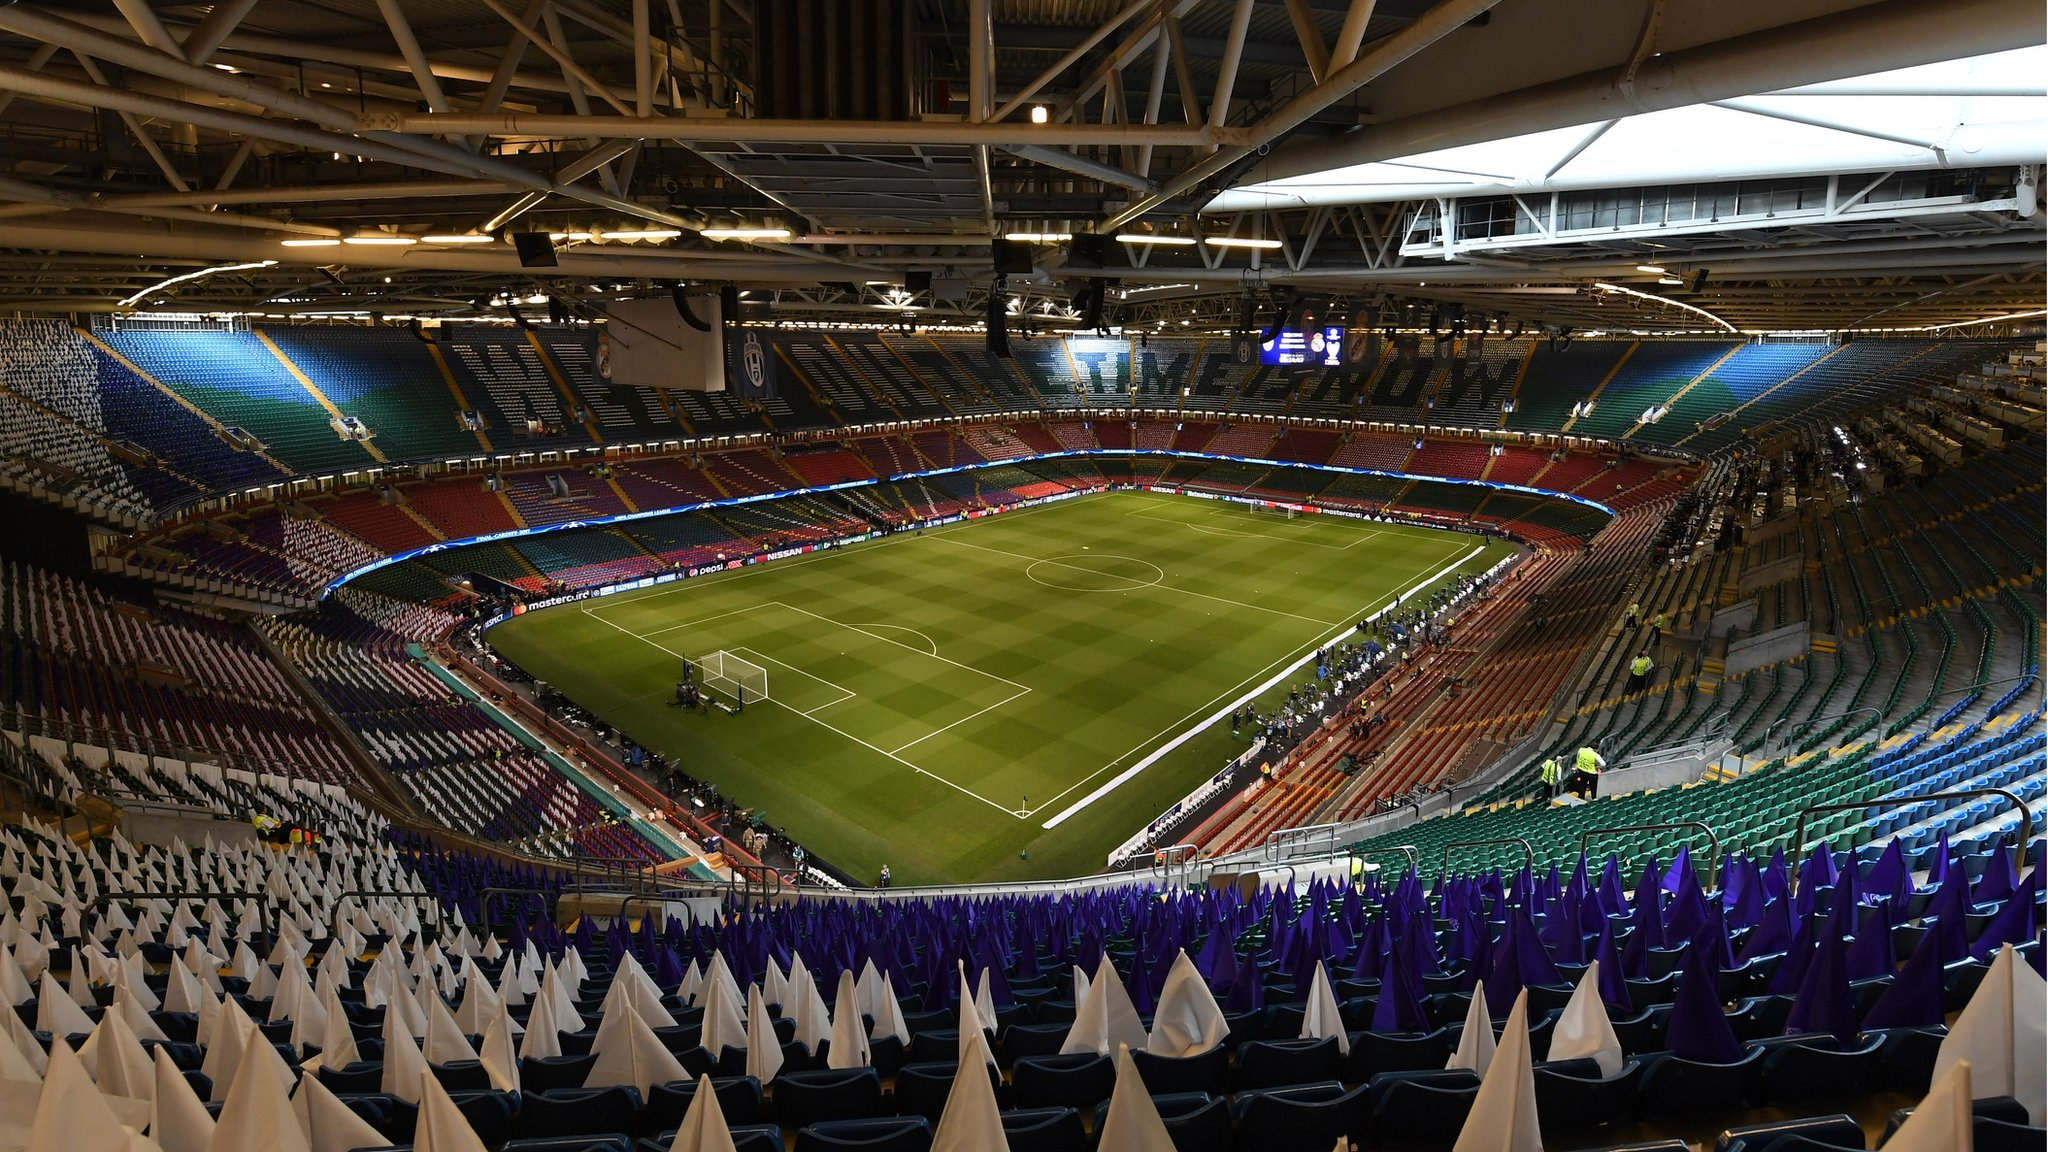 Euro 2020: Wales delighted to bid for matches in Cardiff